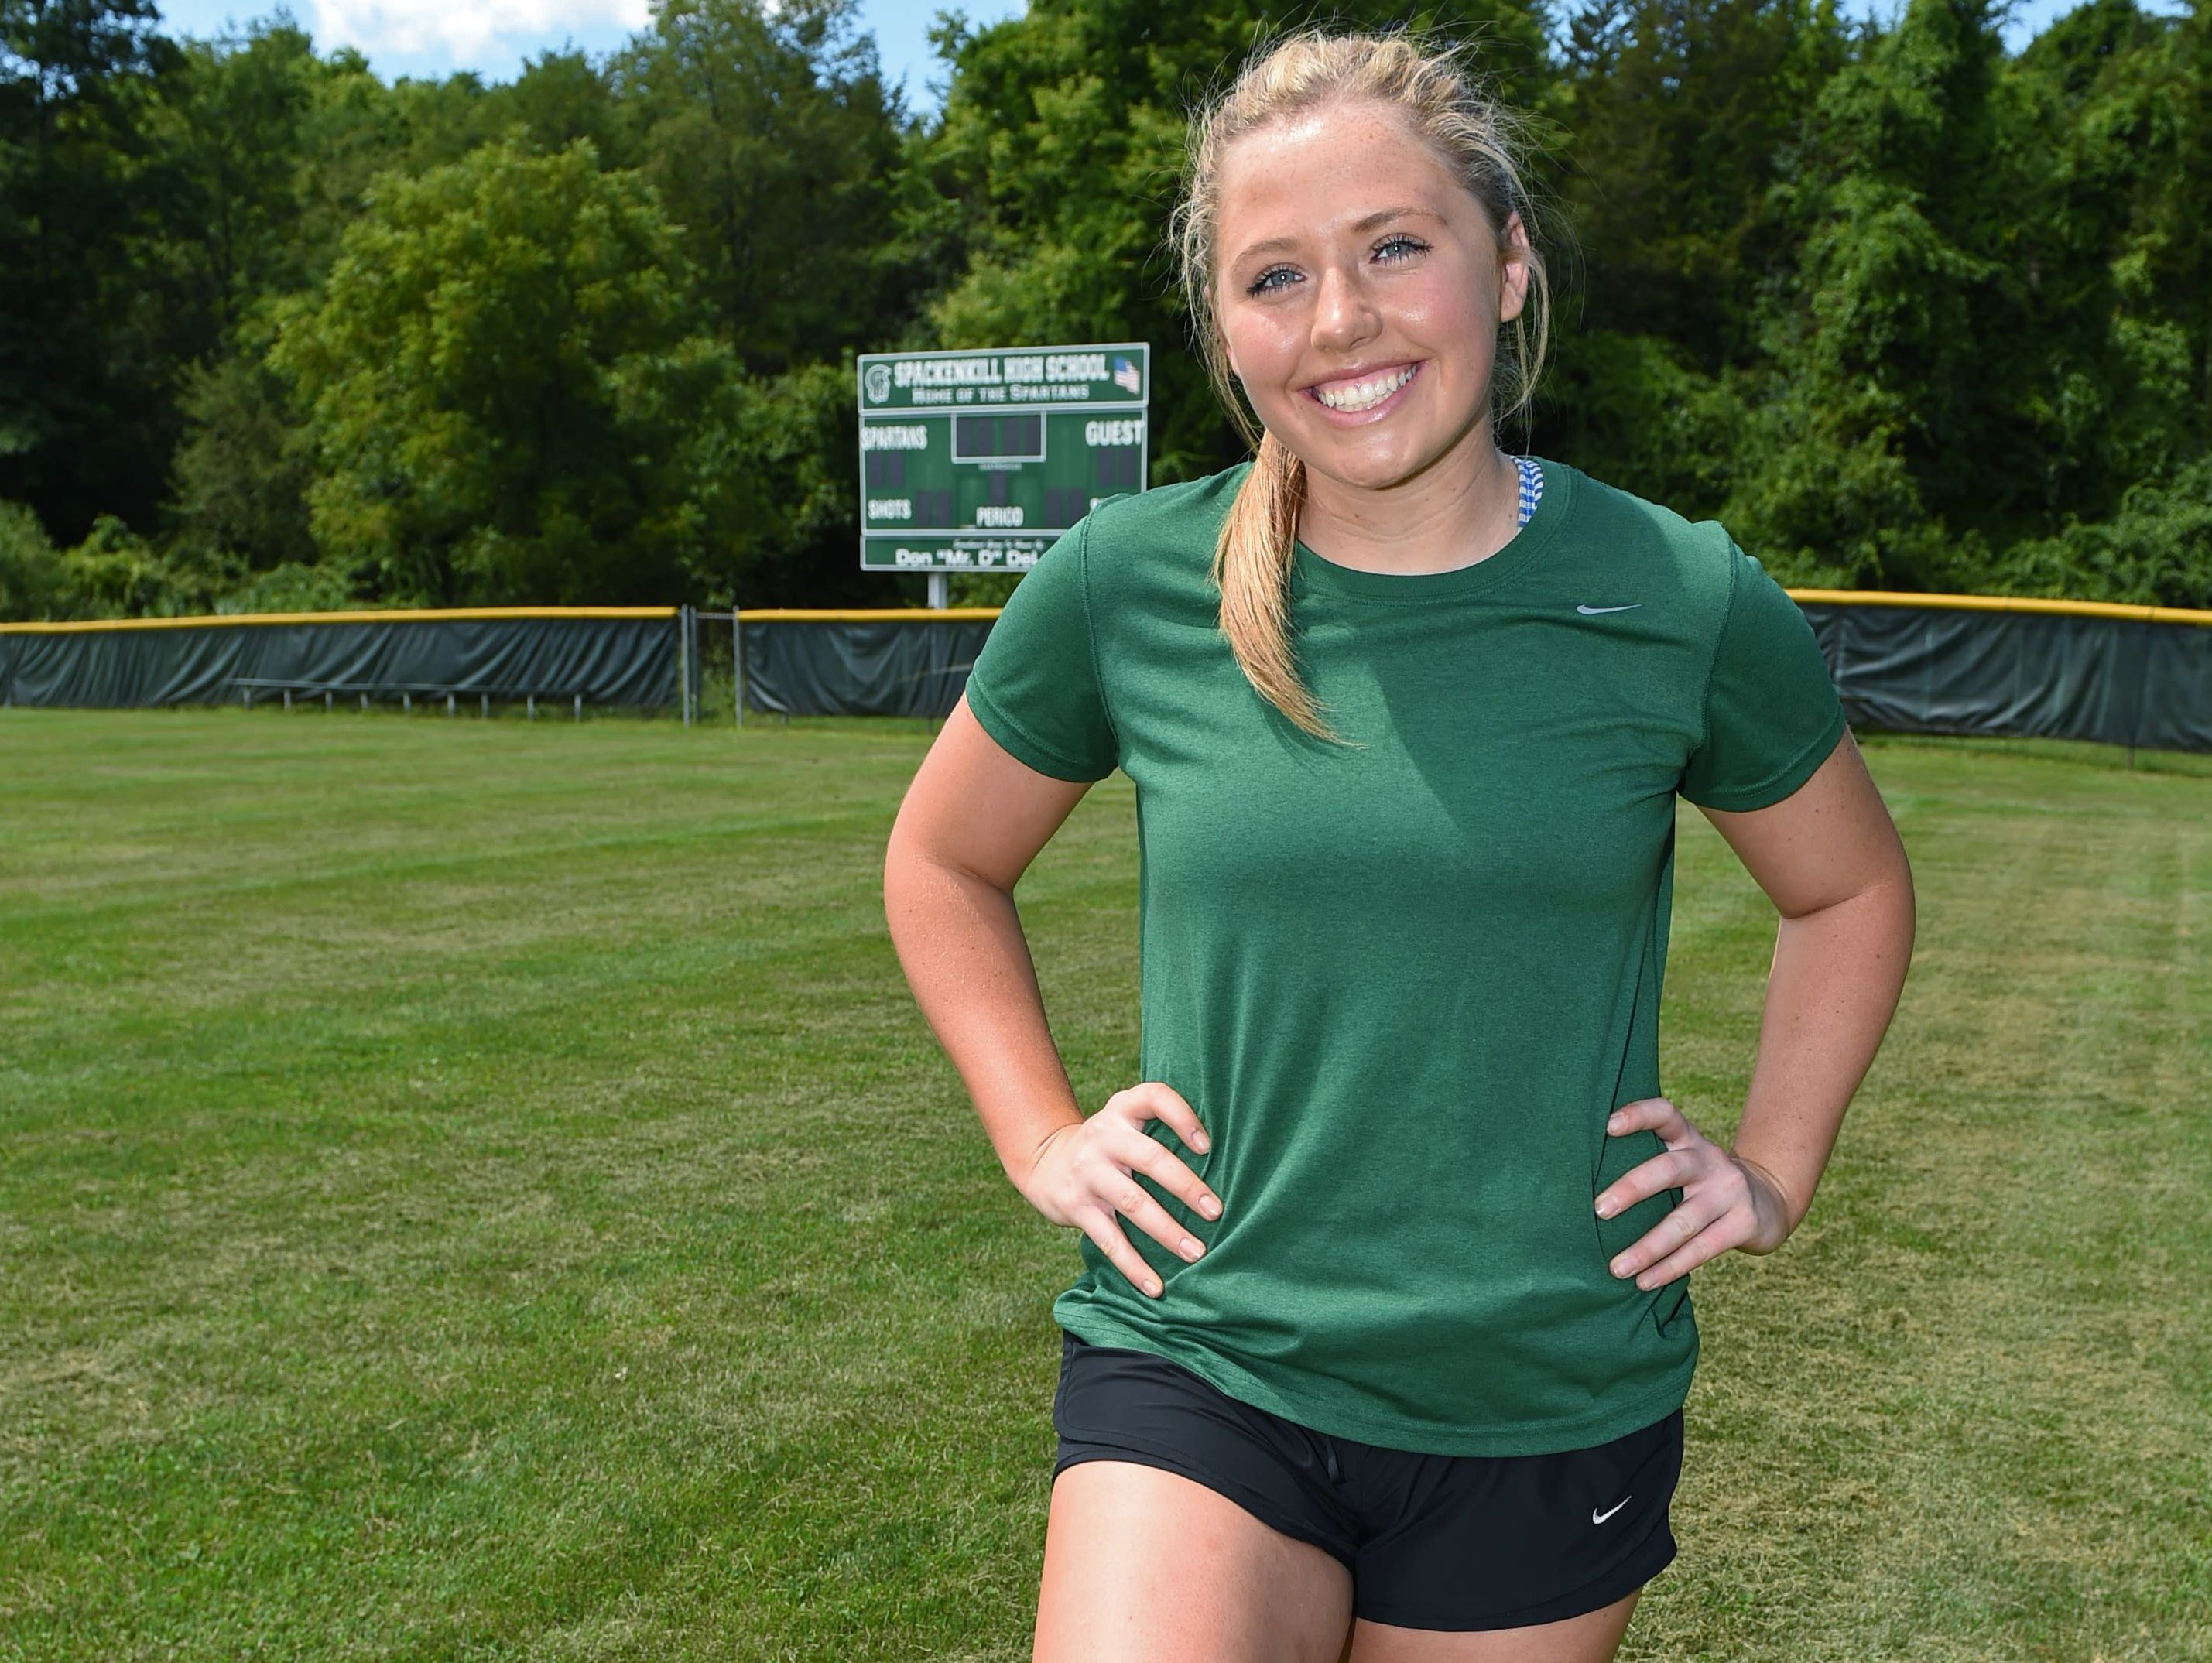 Eileen Fiore poses for a photo at Spackenkill High School on Monday. Fiore tore her ACL in October, 2015 and has been recovering since her surgery in November.